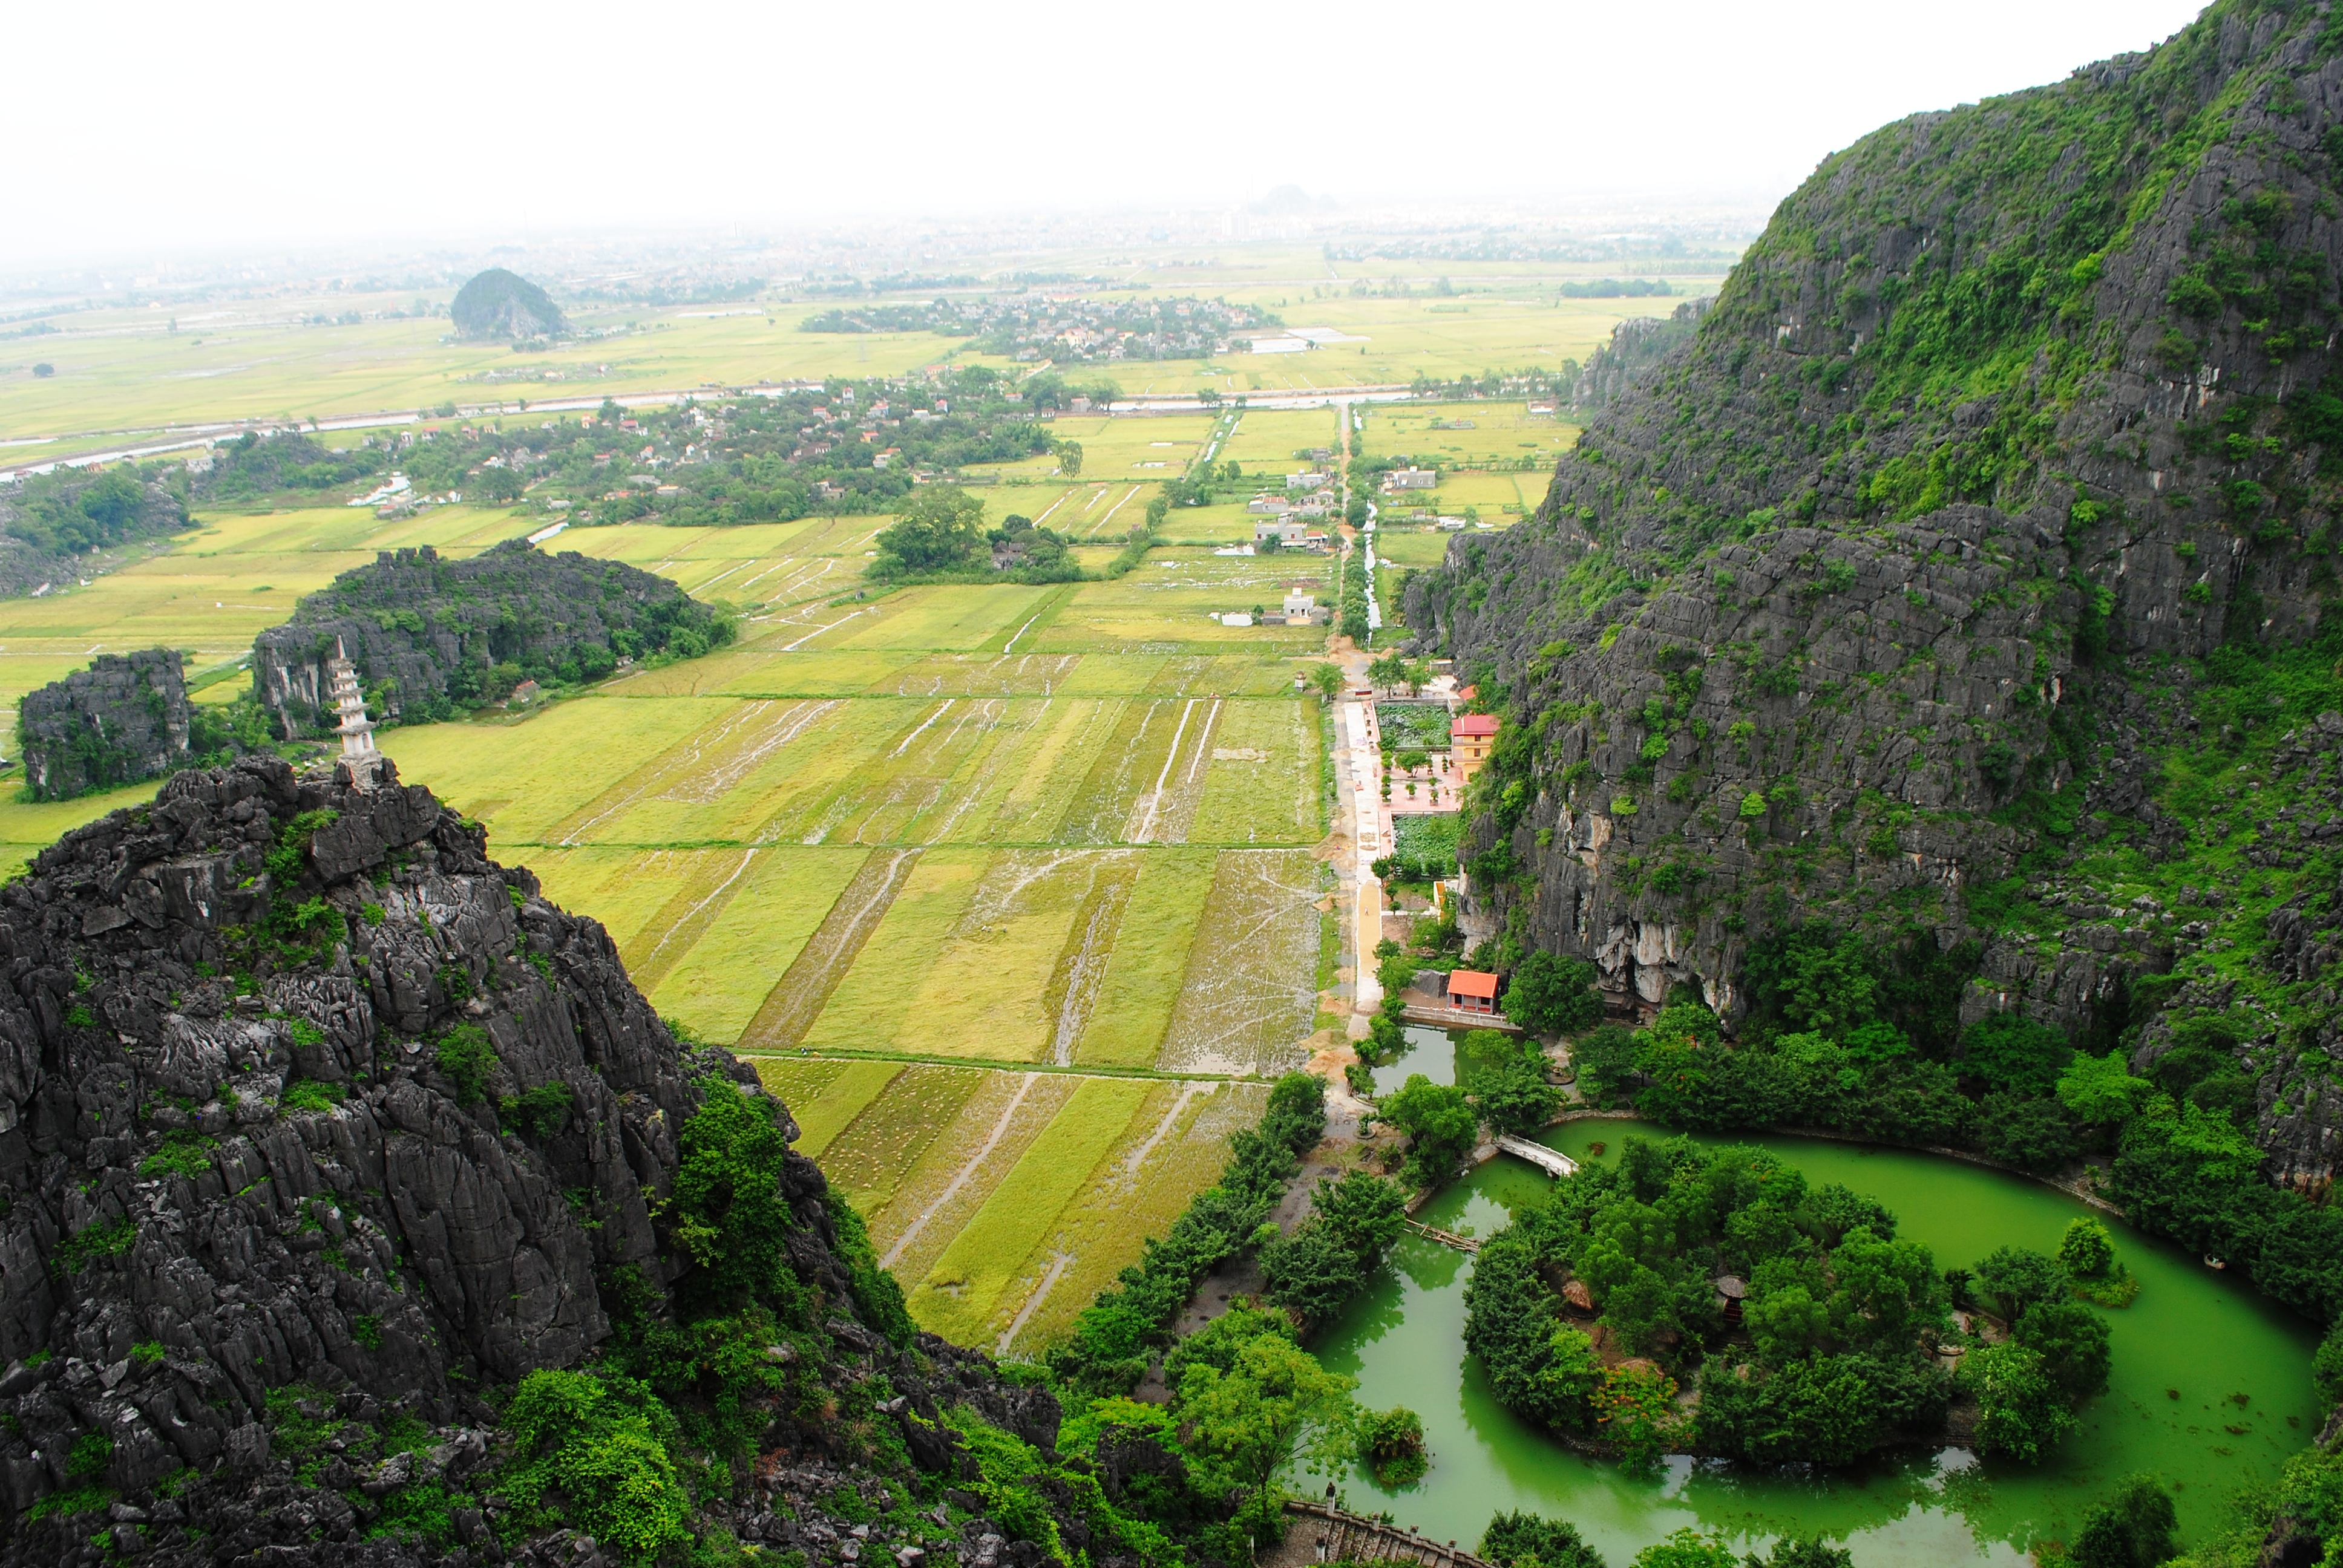 View-to-Rice-Field-from-Peak-of-Mua-Cave